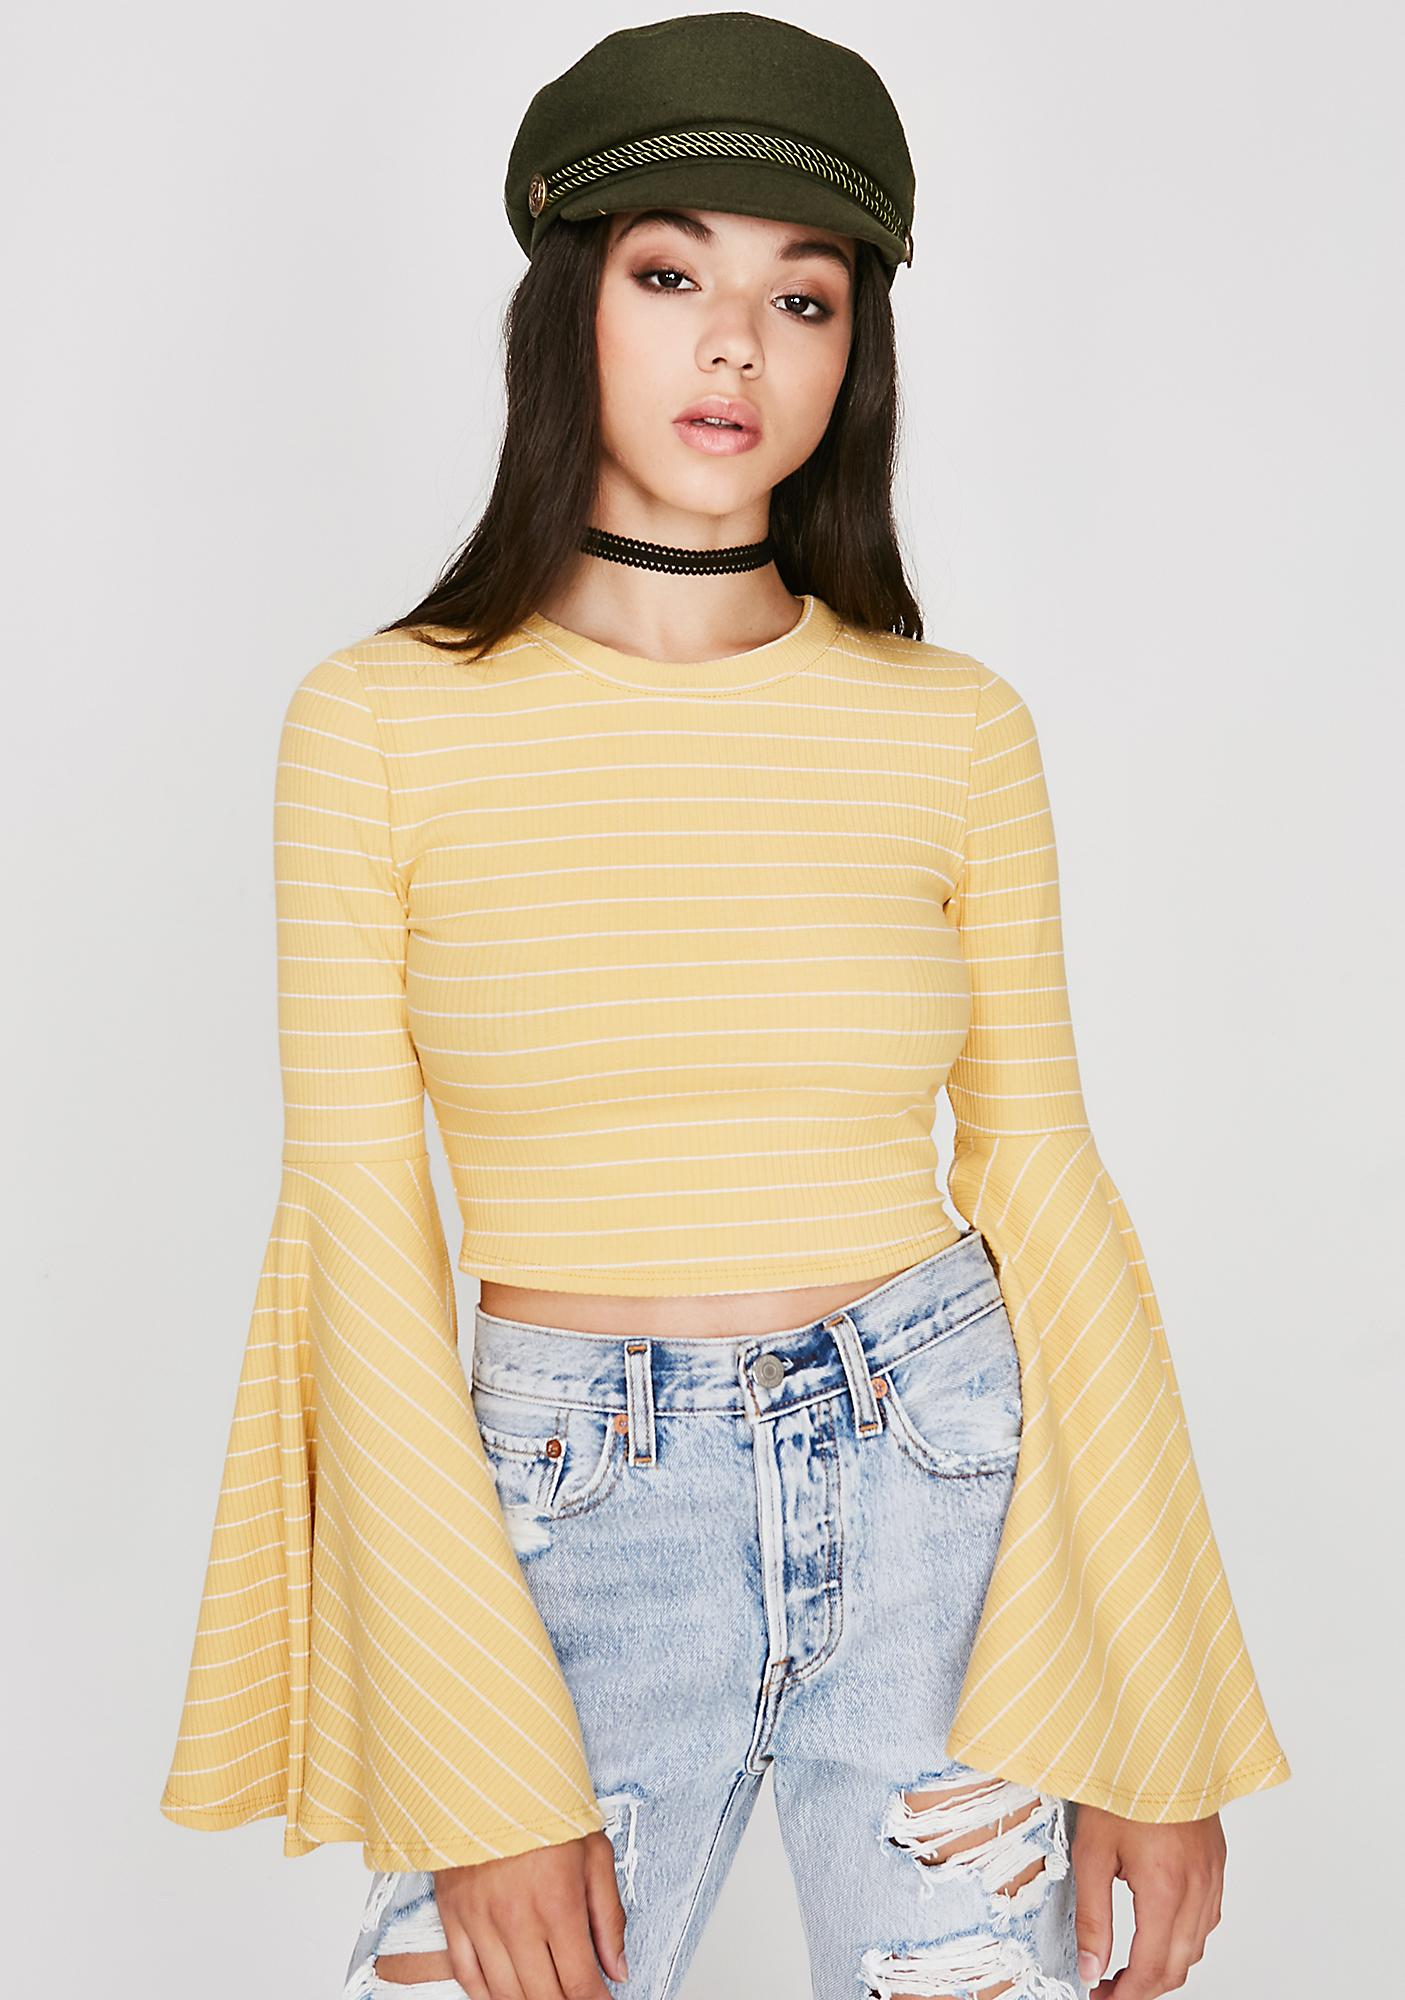 Sunny Teen Dream Striped Top